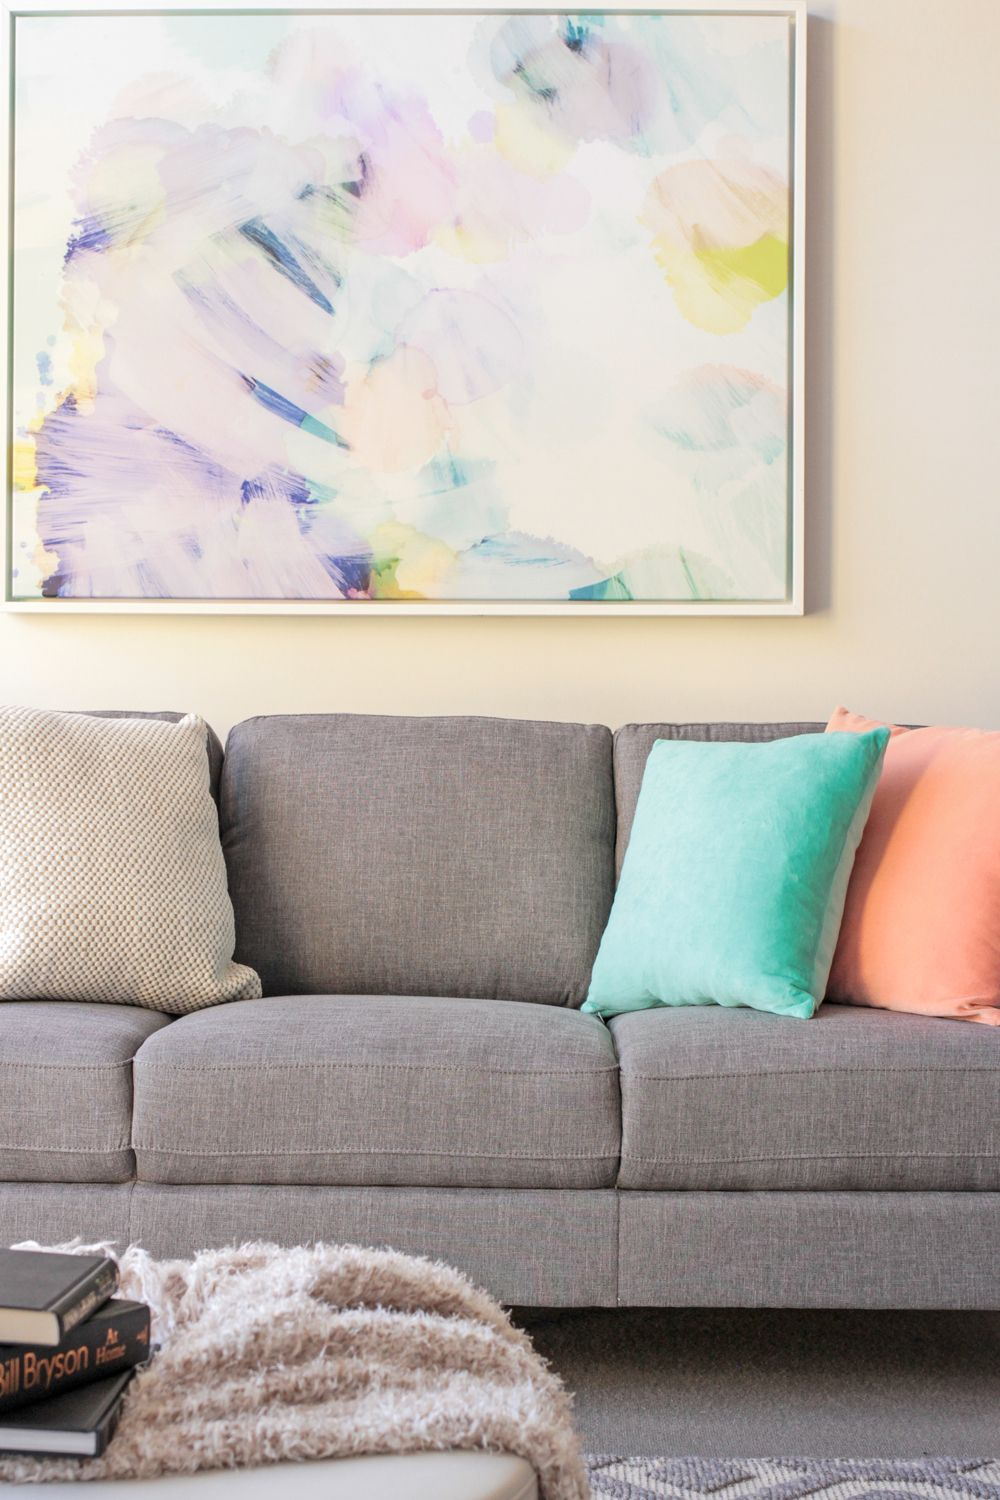 Open Plan Living Dining Kitchen Pastel Bright Cushions Grey Sofa Styling Sofa Styling Gray Sofa Styling Open Plan Living